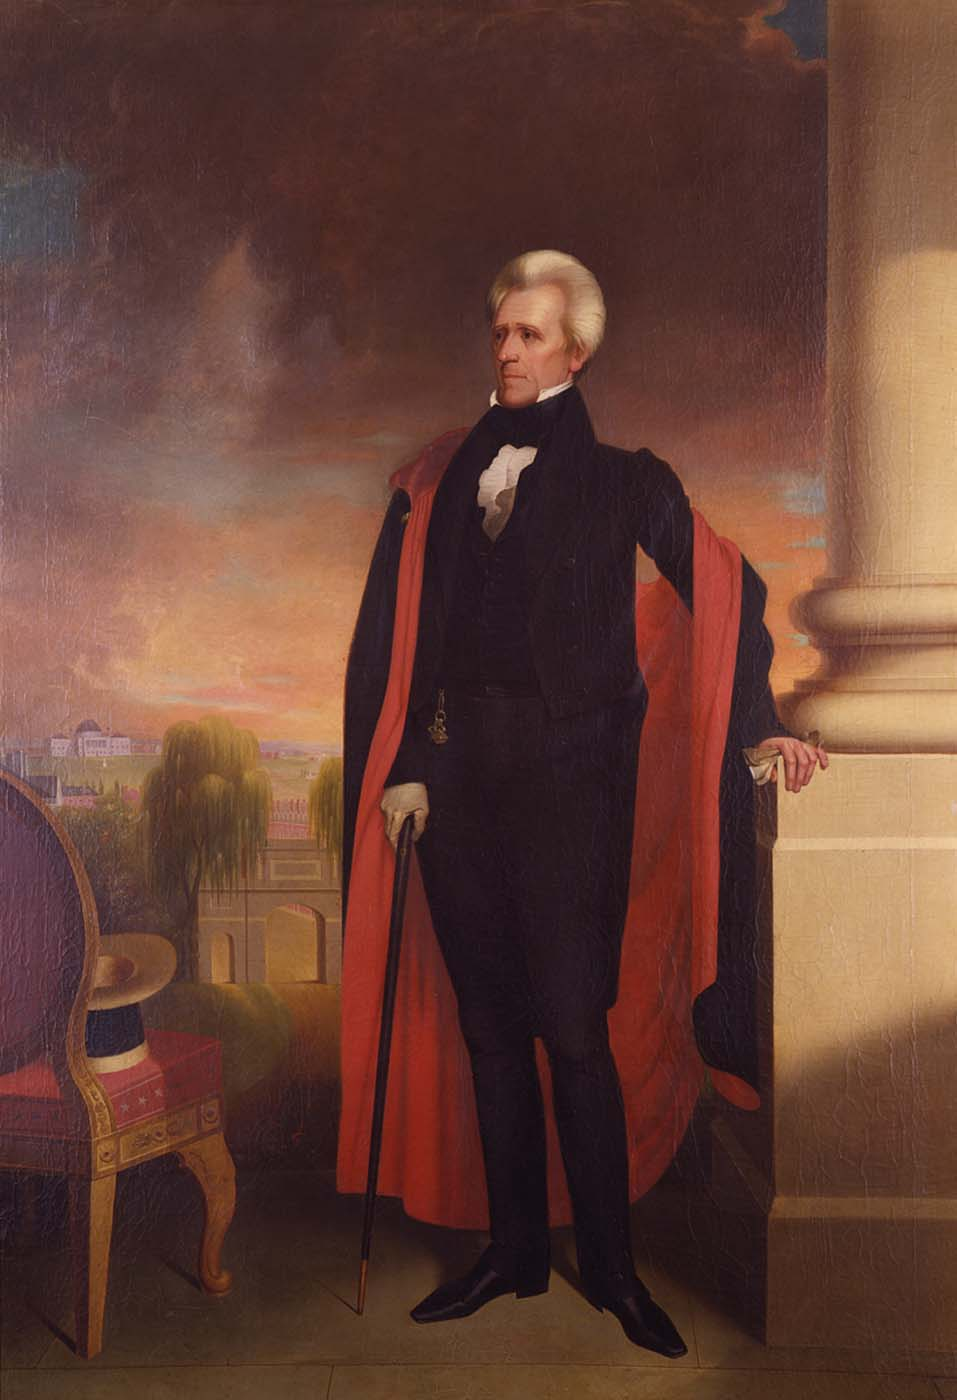 andrew jackson campaign speech of 1828 essay Get an answer for 'would you have voted for andrew jackson in 1828the campaign of 1828 was in an essay supporting either andrew jackson or john enotes.